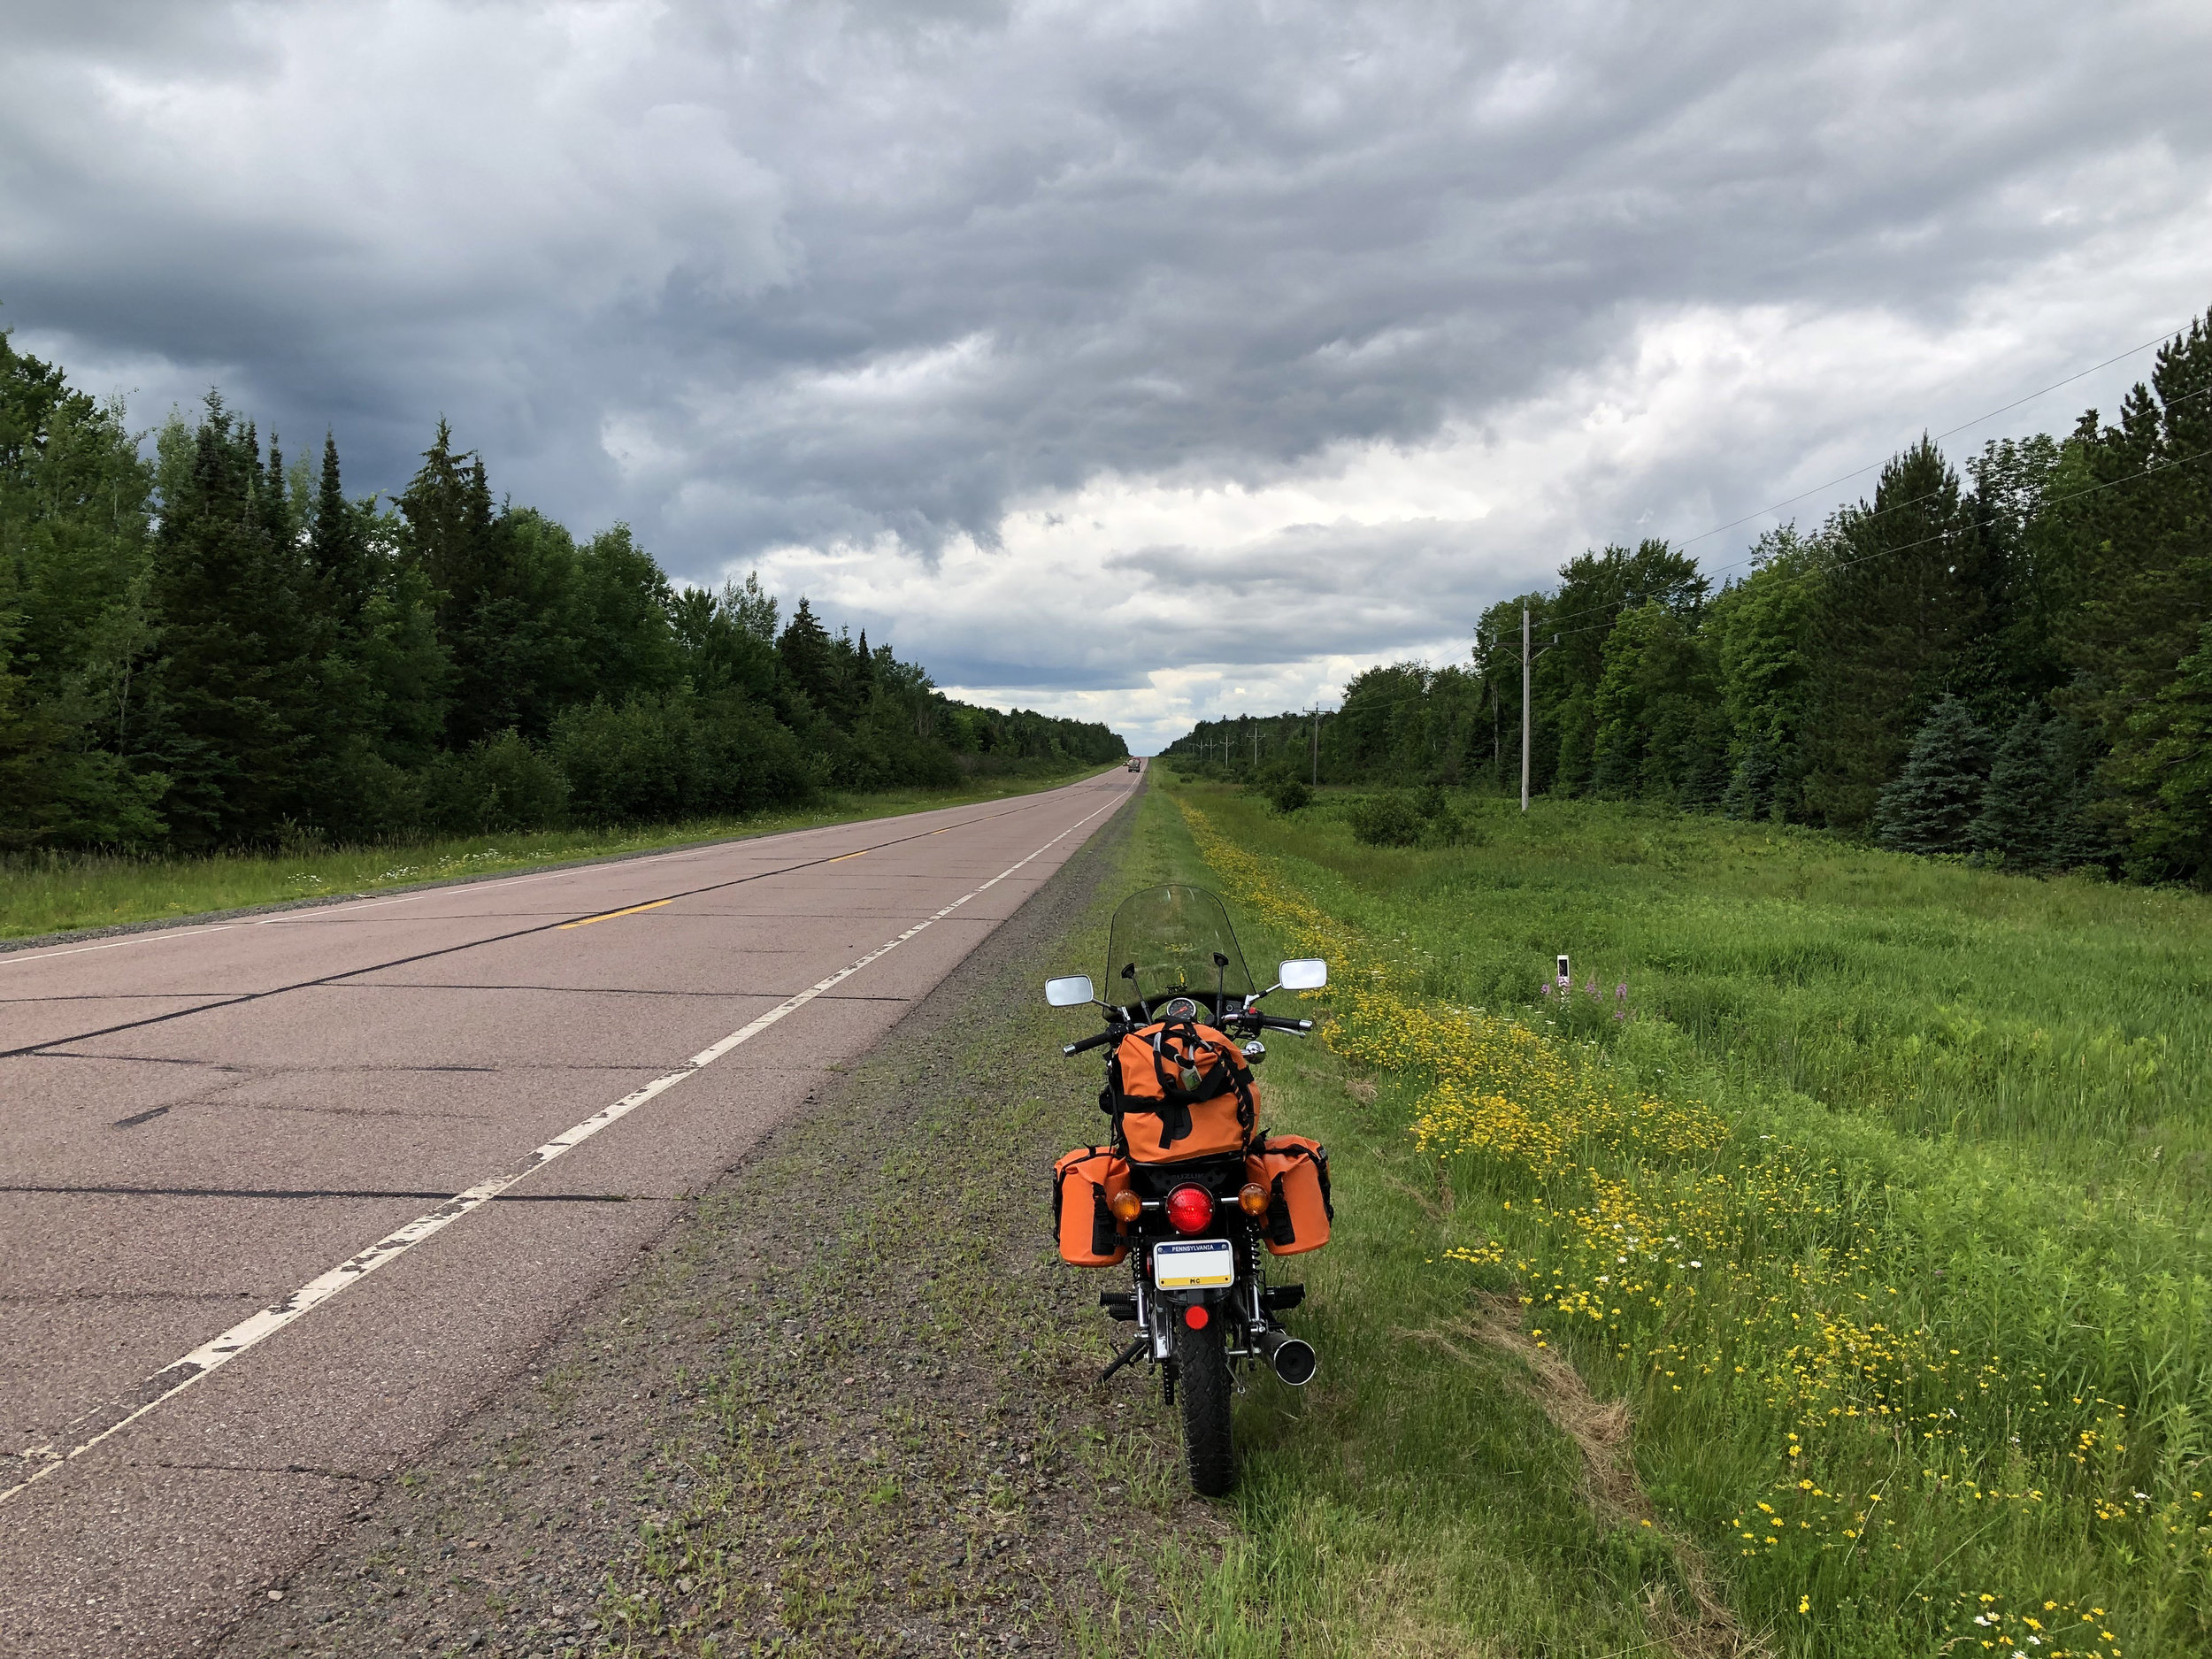 Riding through the scenic Chequamegon-Nicolet National Forest in Wisconsin.